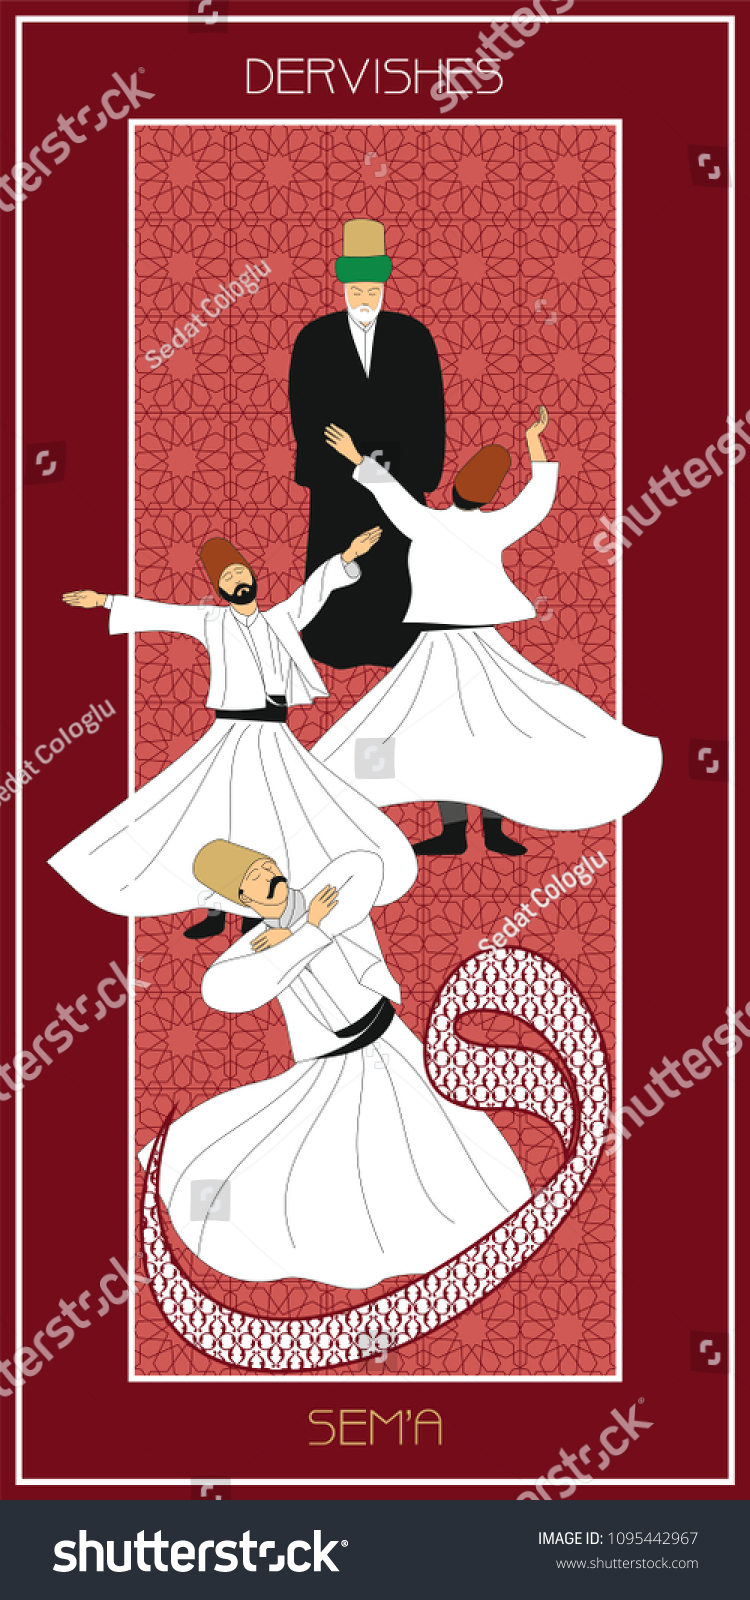 stock-vector-sema-is-a-ritual-of-mevlevi-belief-mevlevihane-mevlevi-house-is-where-these-ceremonies-took-1095442967